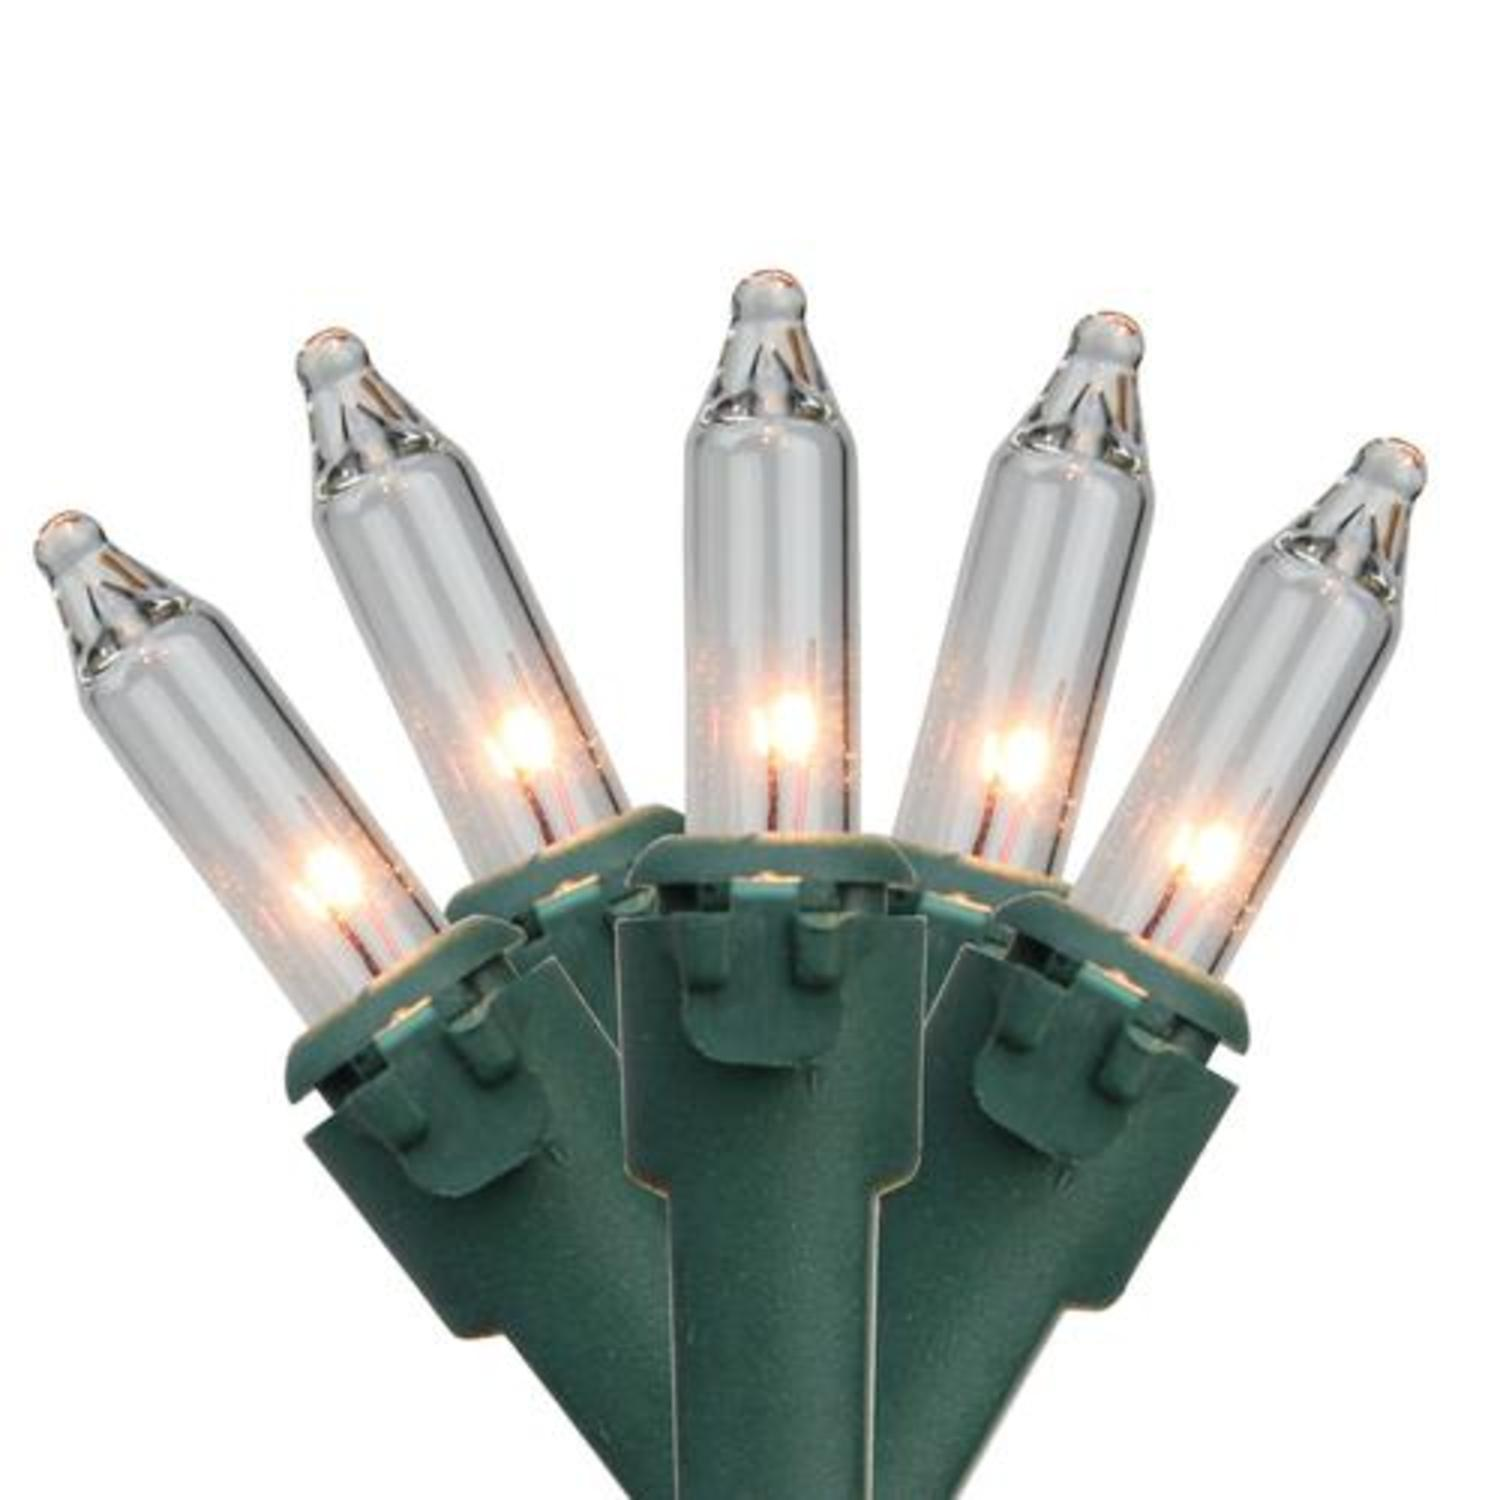 "Set of 10 Clear Mini Christmas Lights 5.25"" Spacing-Green Wire"